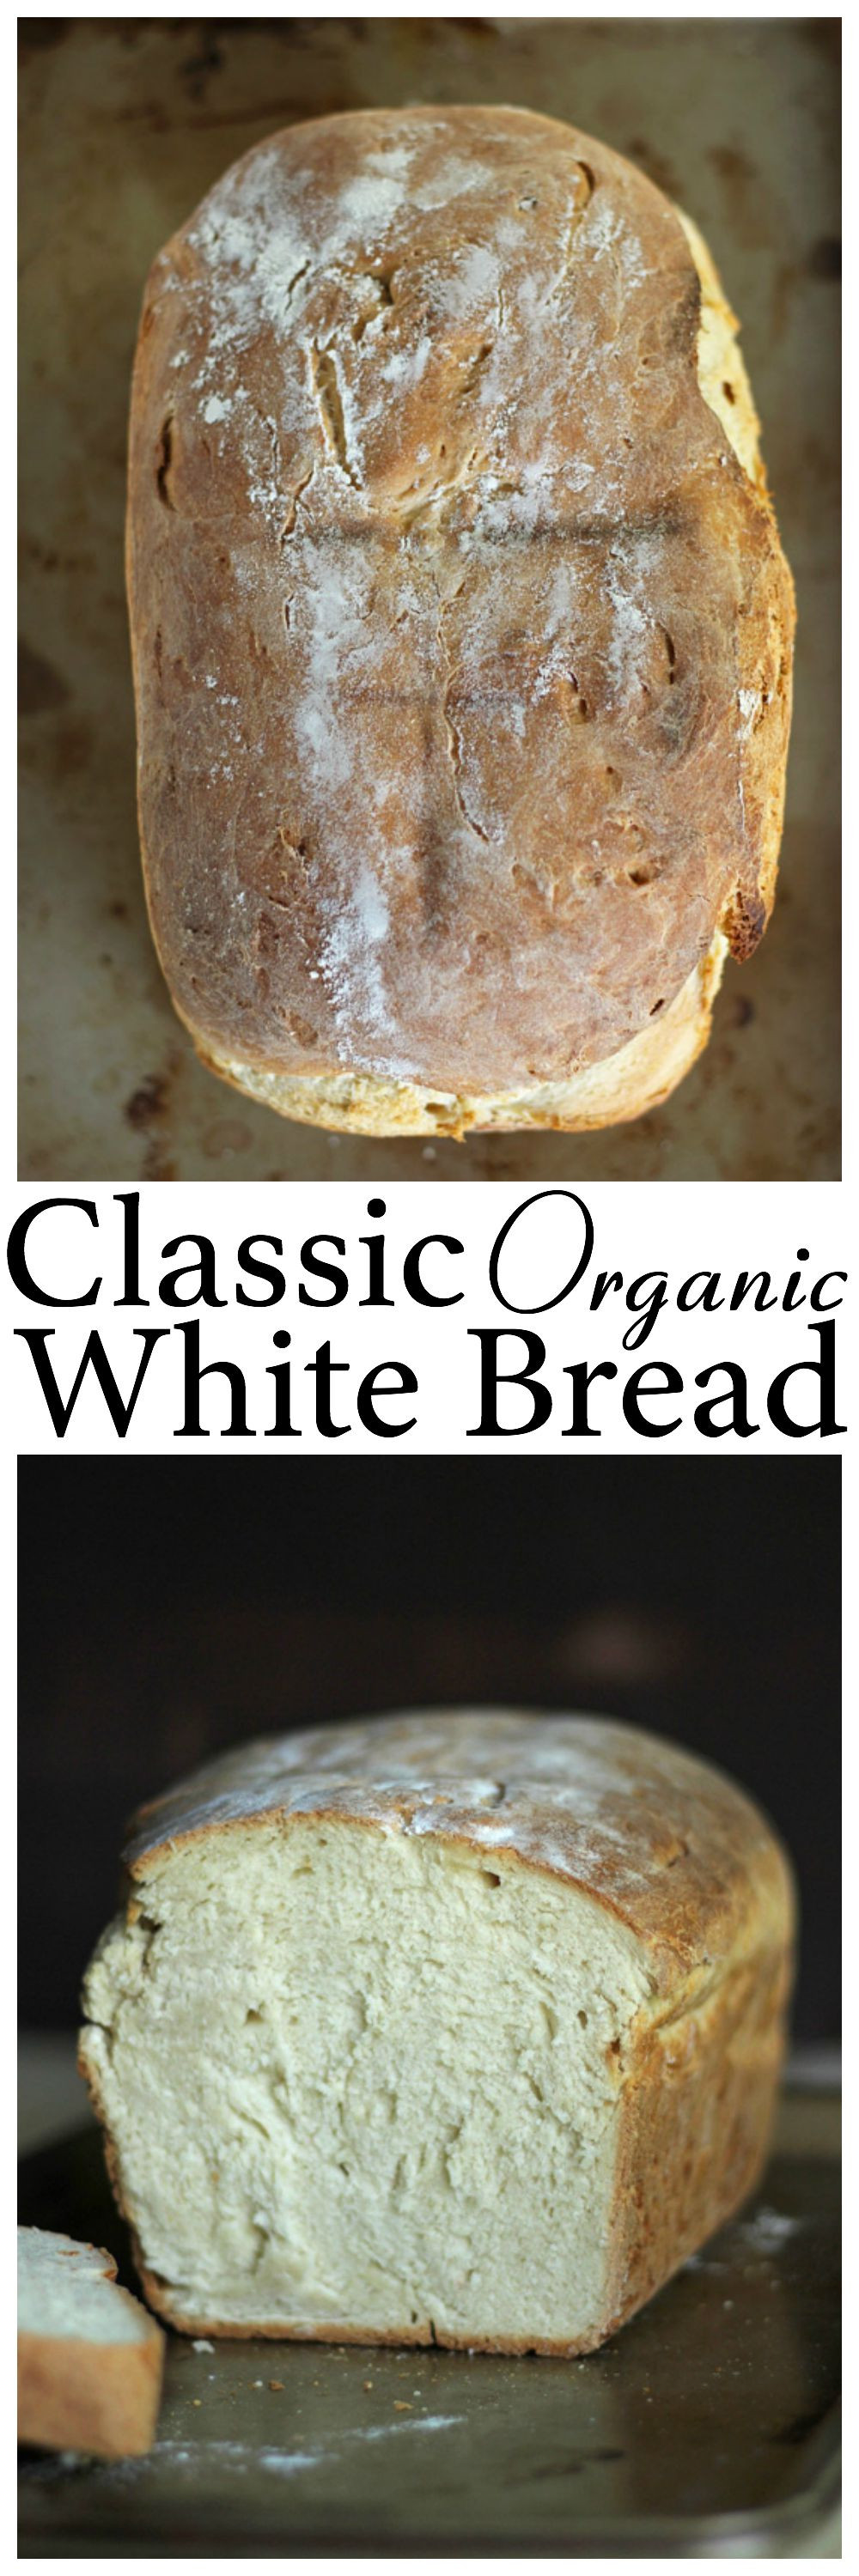 Organic White Bread 20 Best Classic organic White Bread